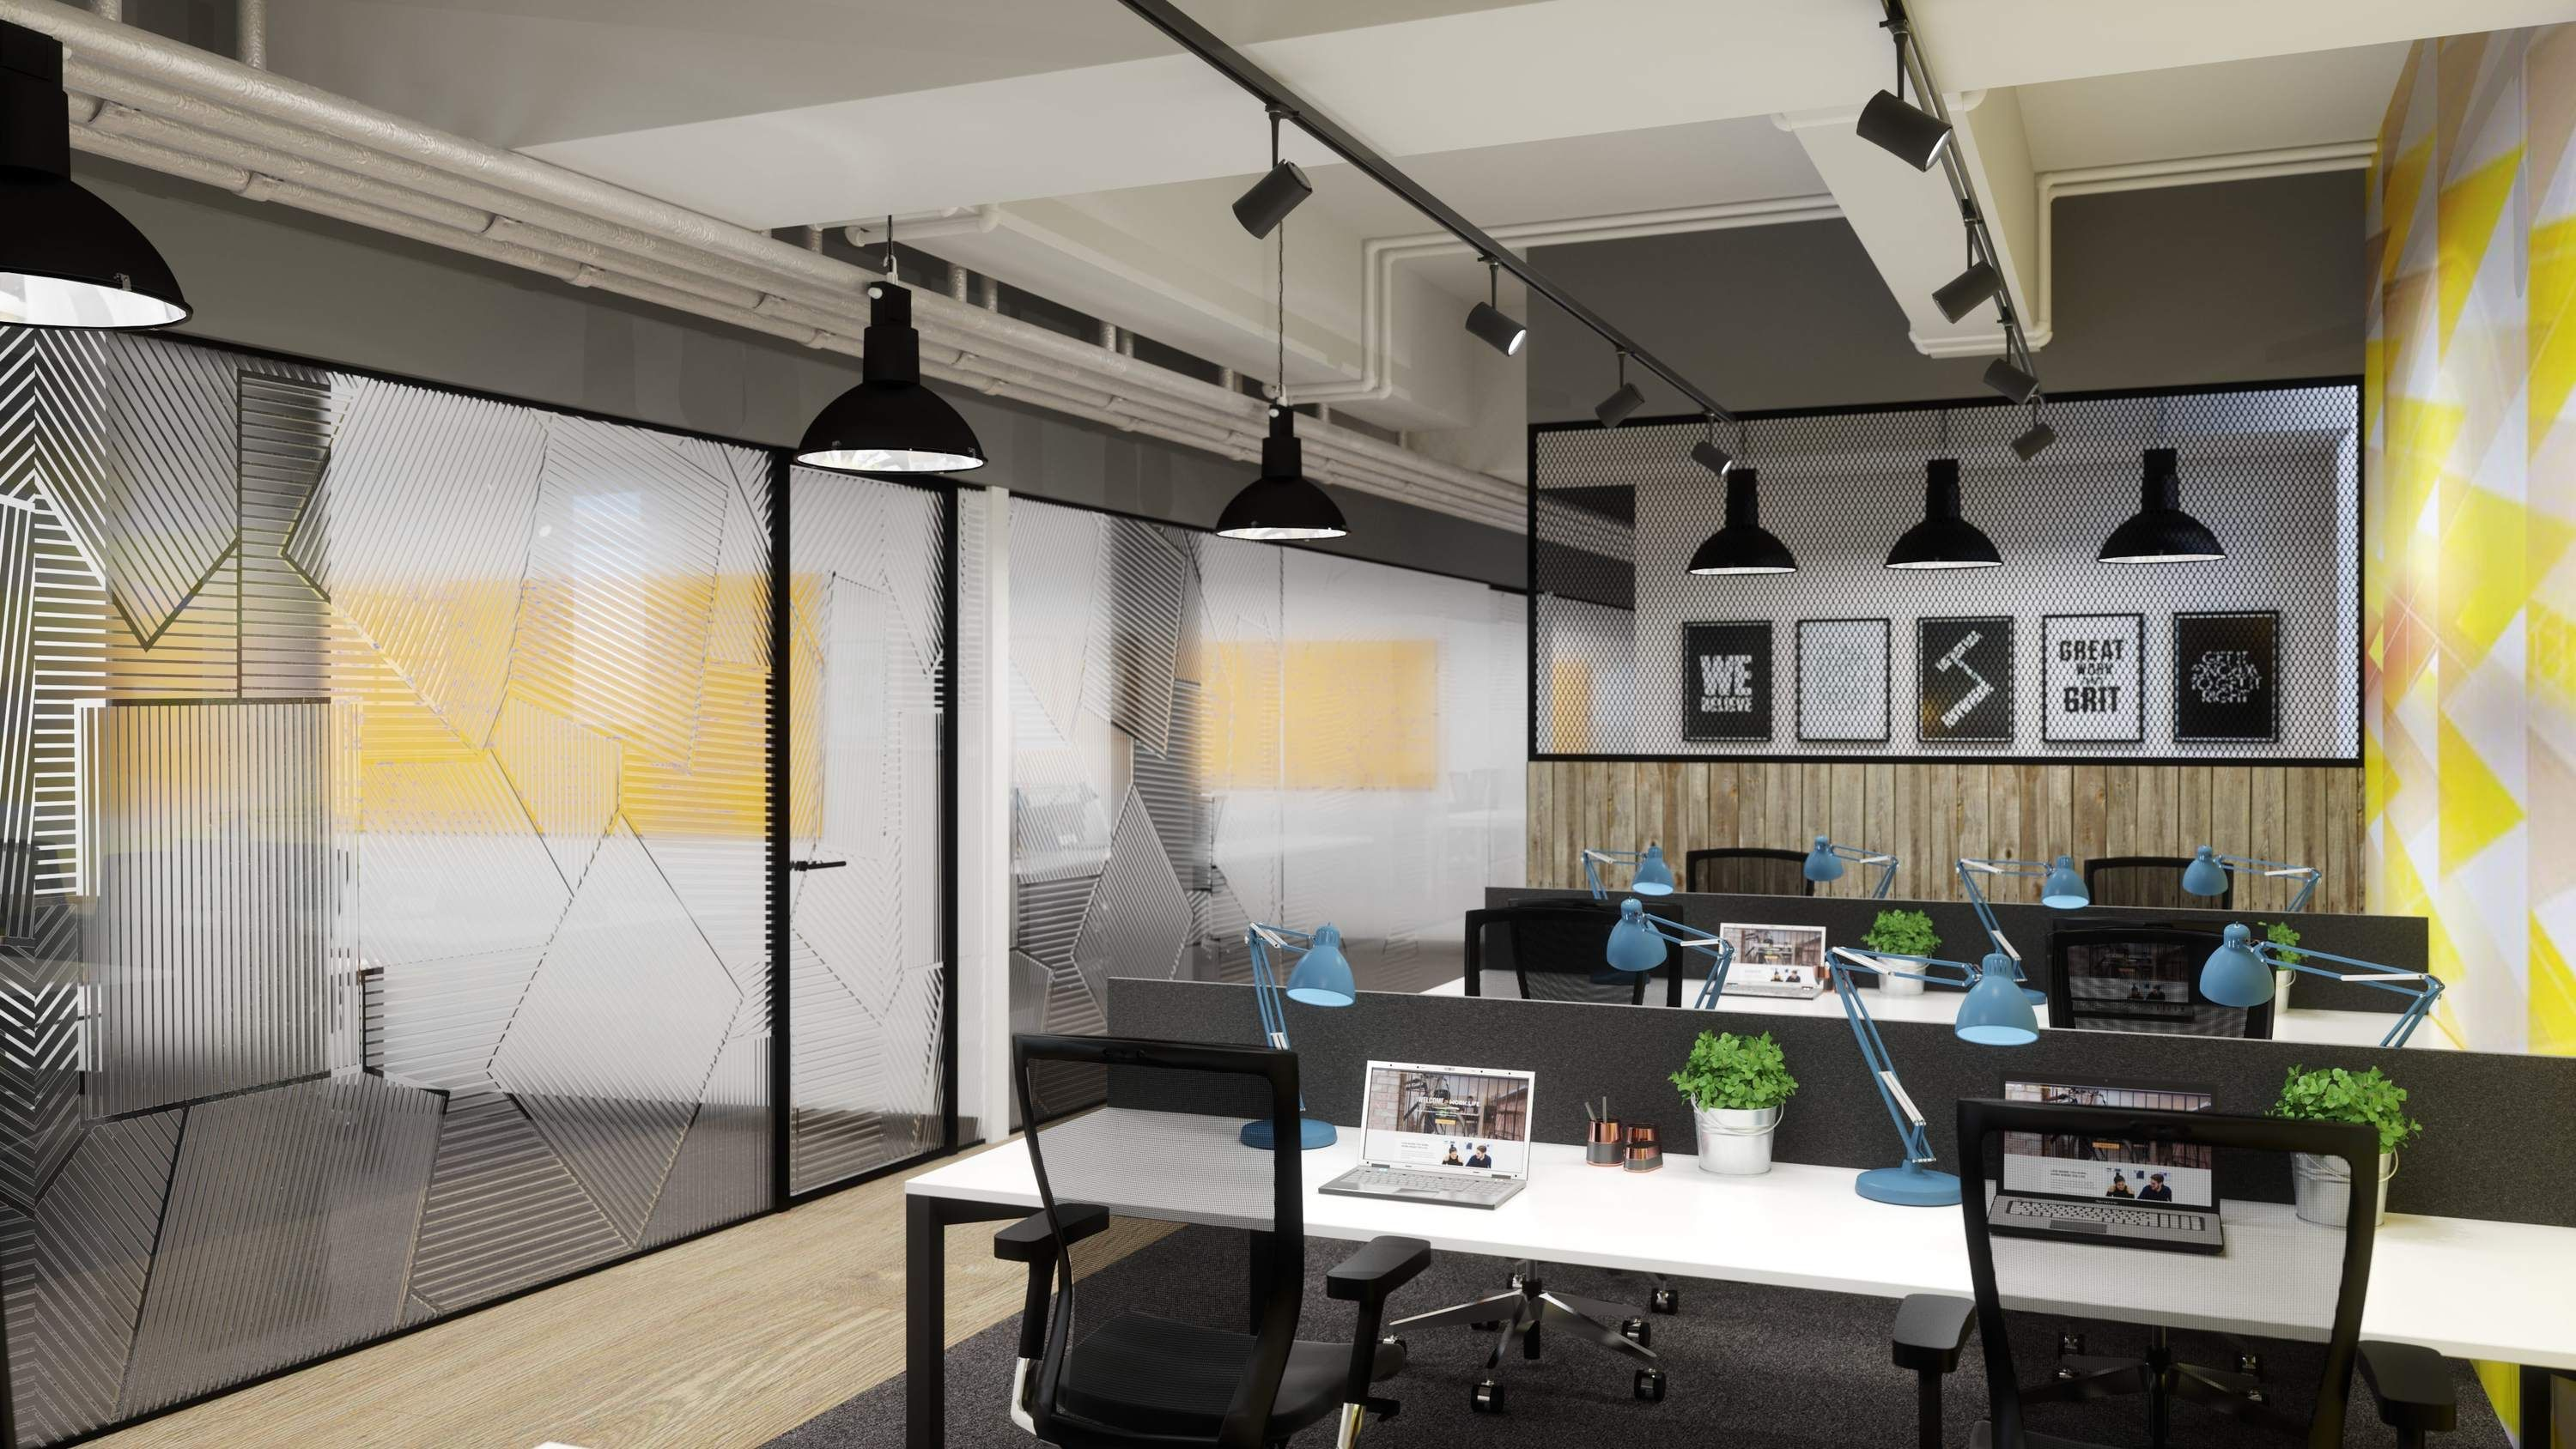 Four New Co Working Spaces In London Where Everyone Wants A Desk Cool Office Space Shared Office Shared Office Space